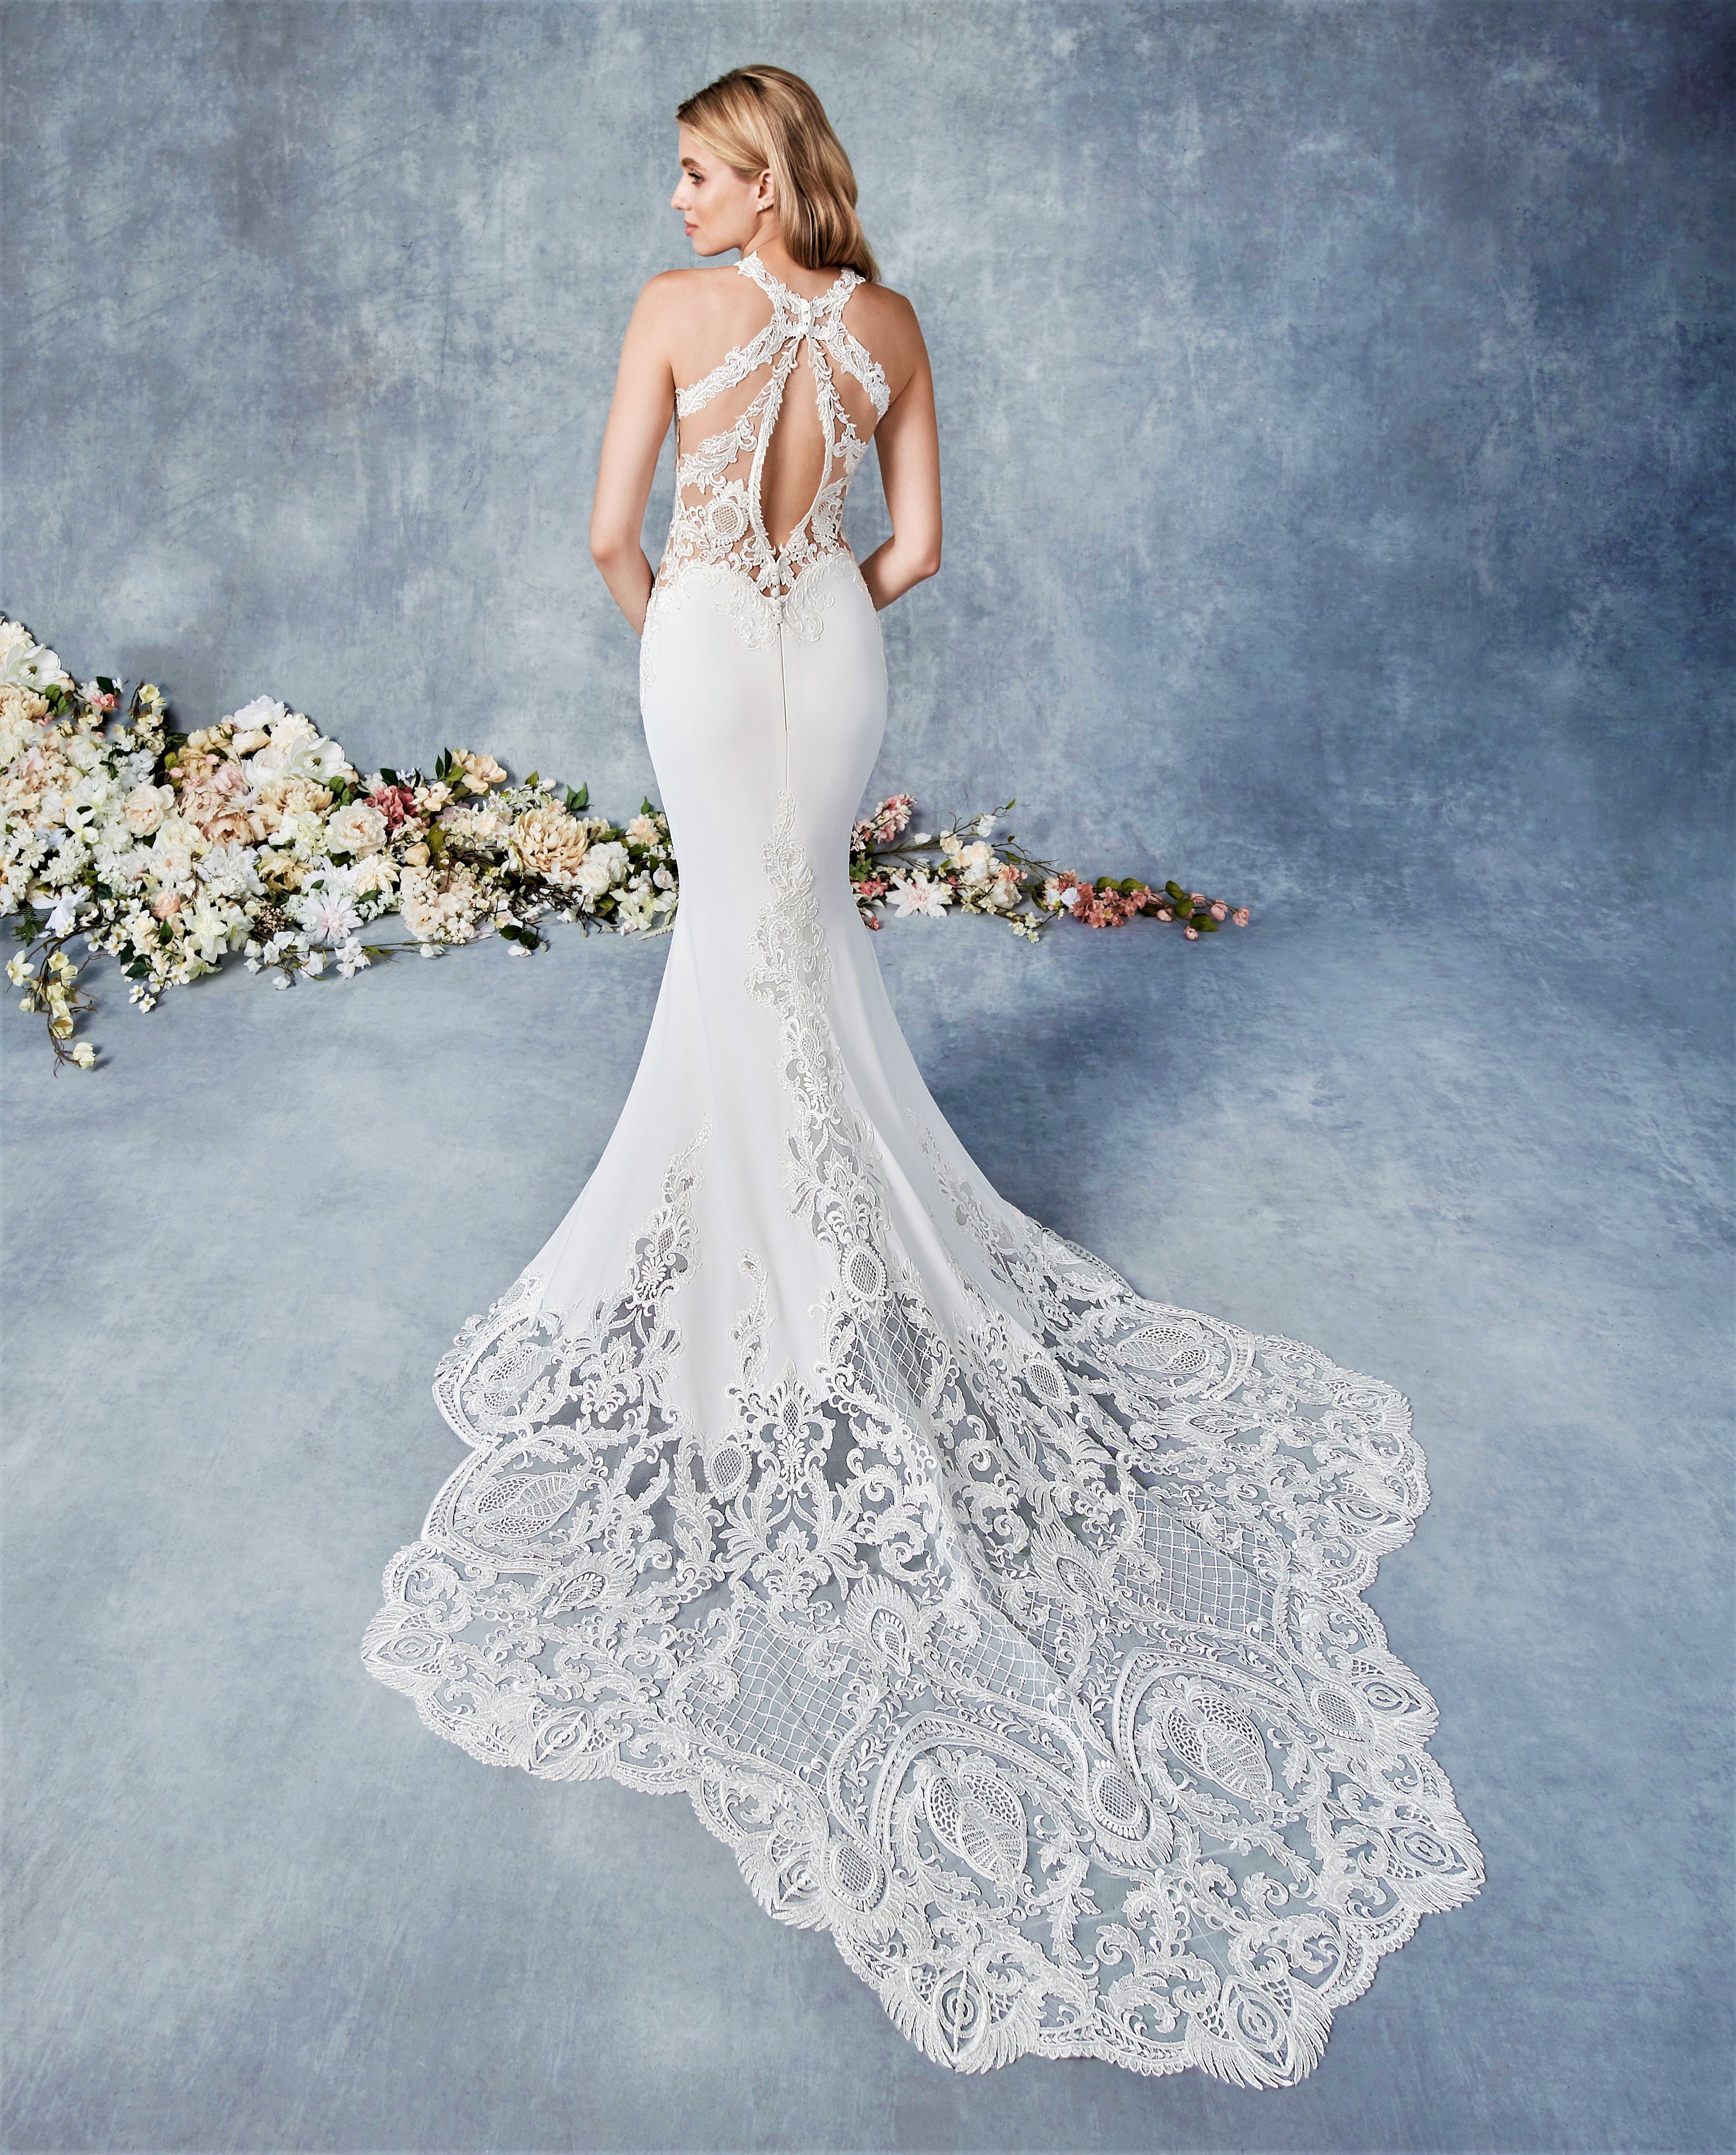 Detailed back wedding dress with lace train in 2020